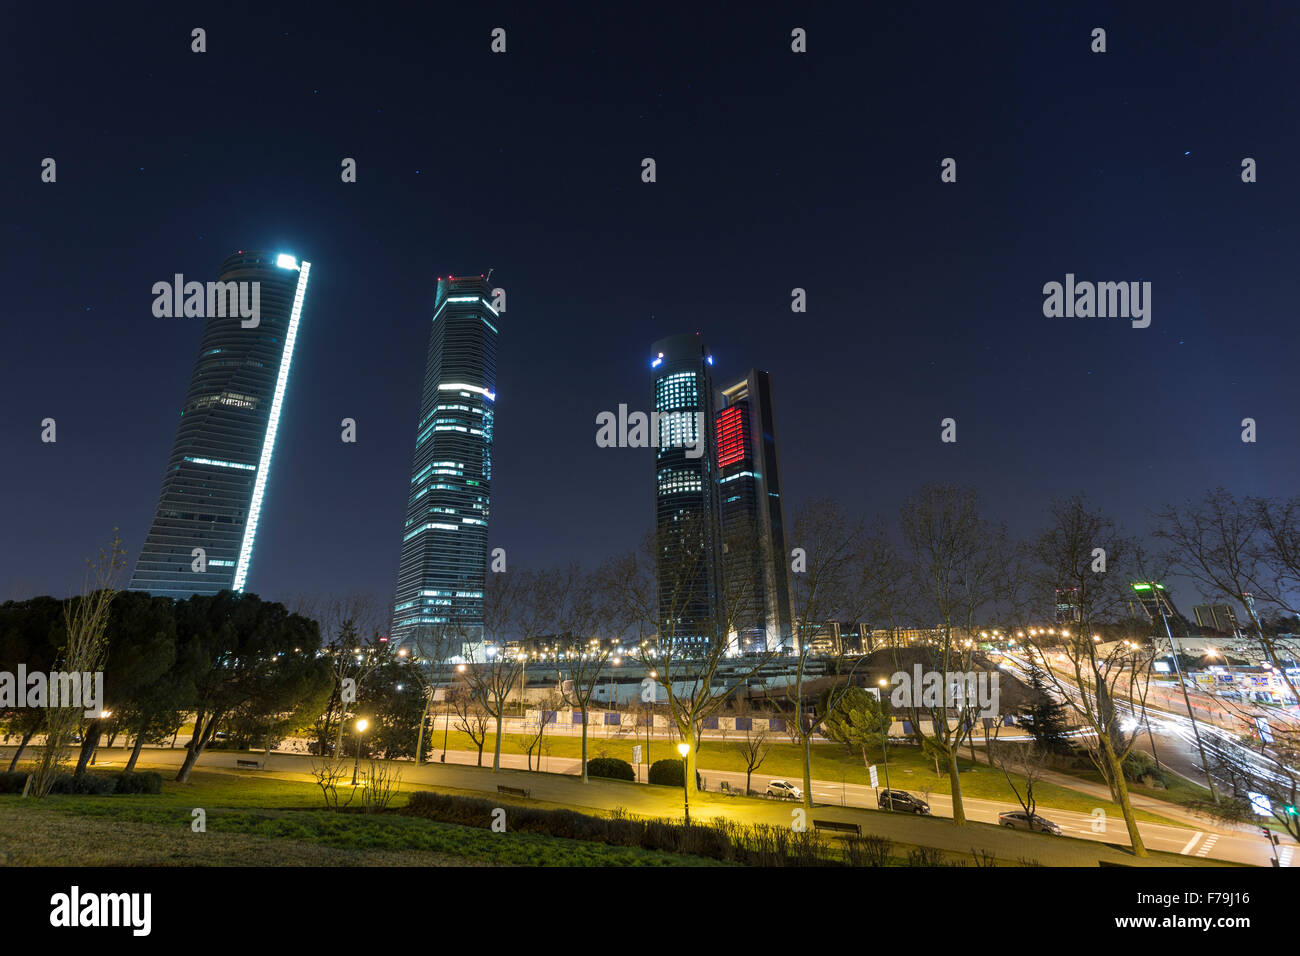 Castellana towers, business center on a Castellana street in Madrid city - Stock Image